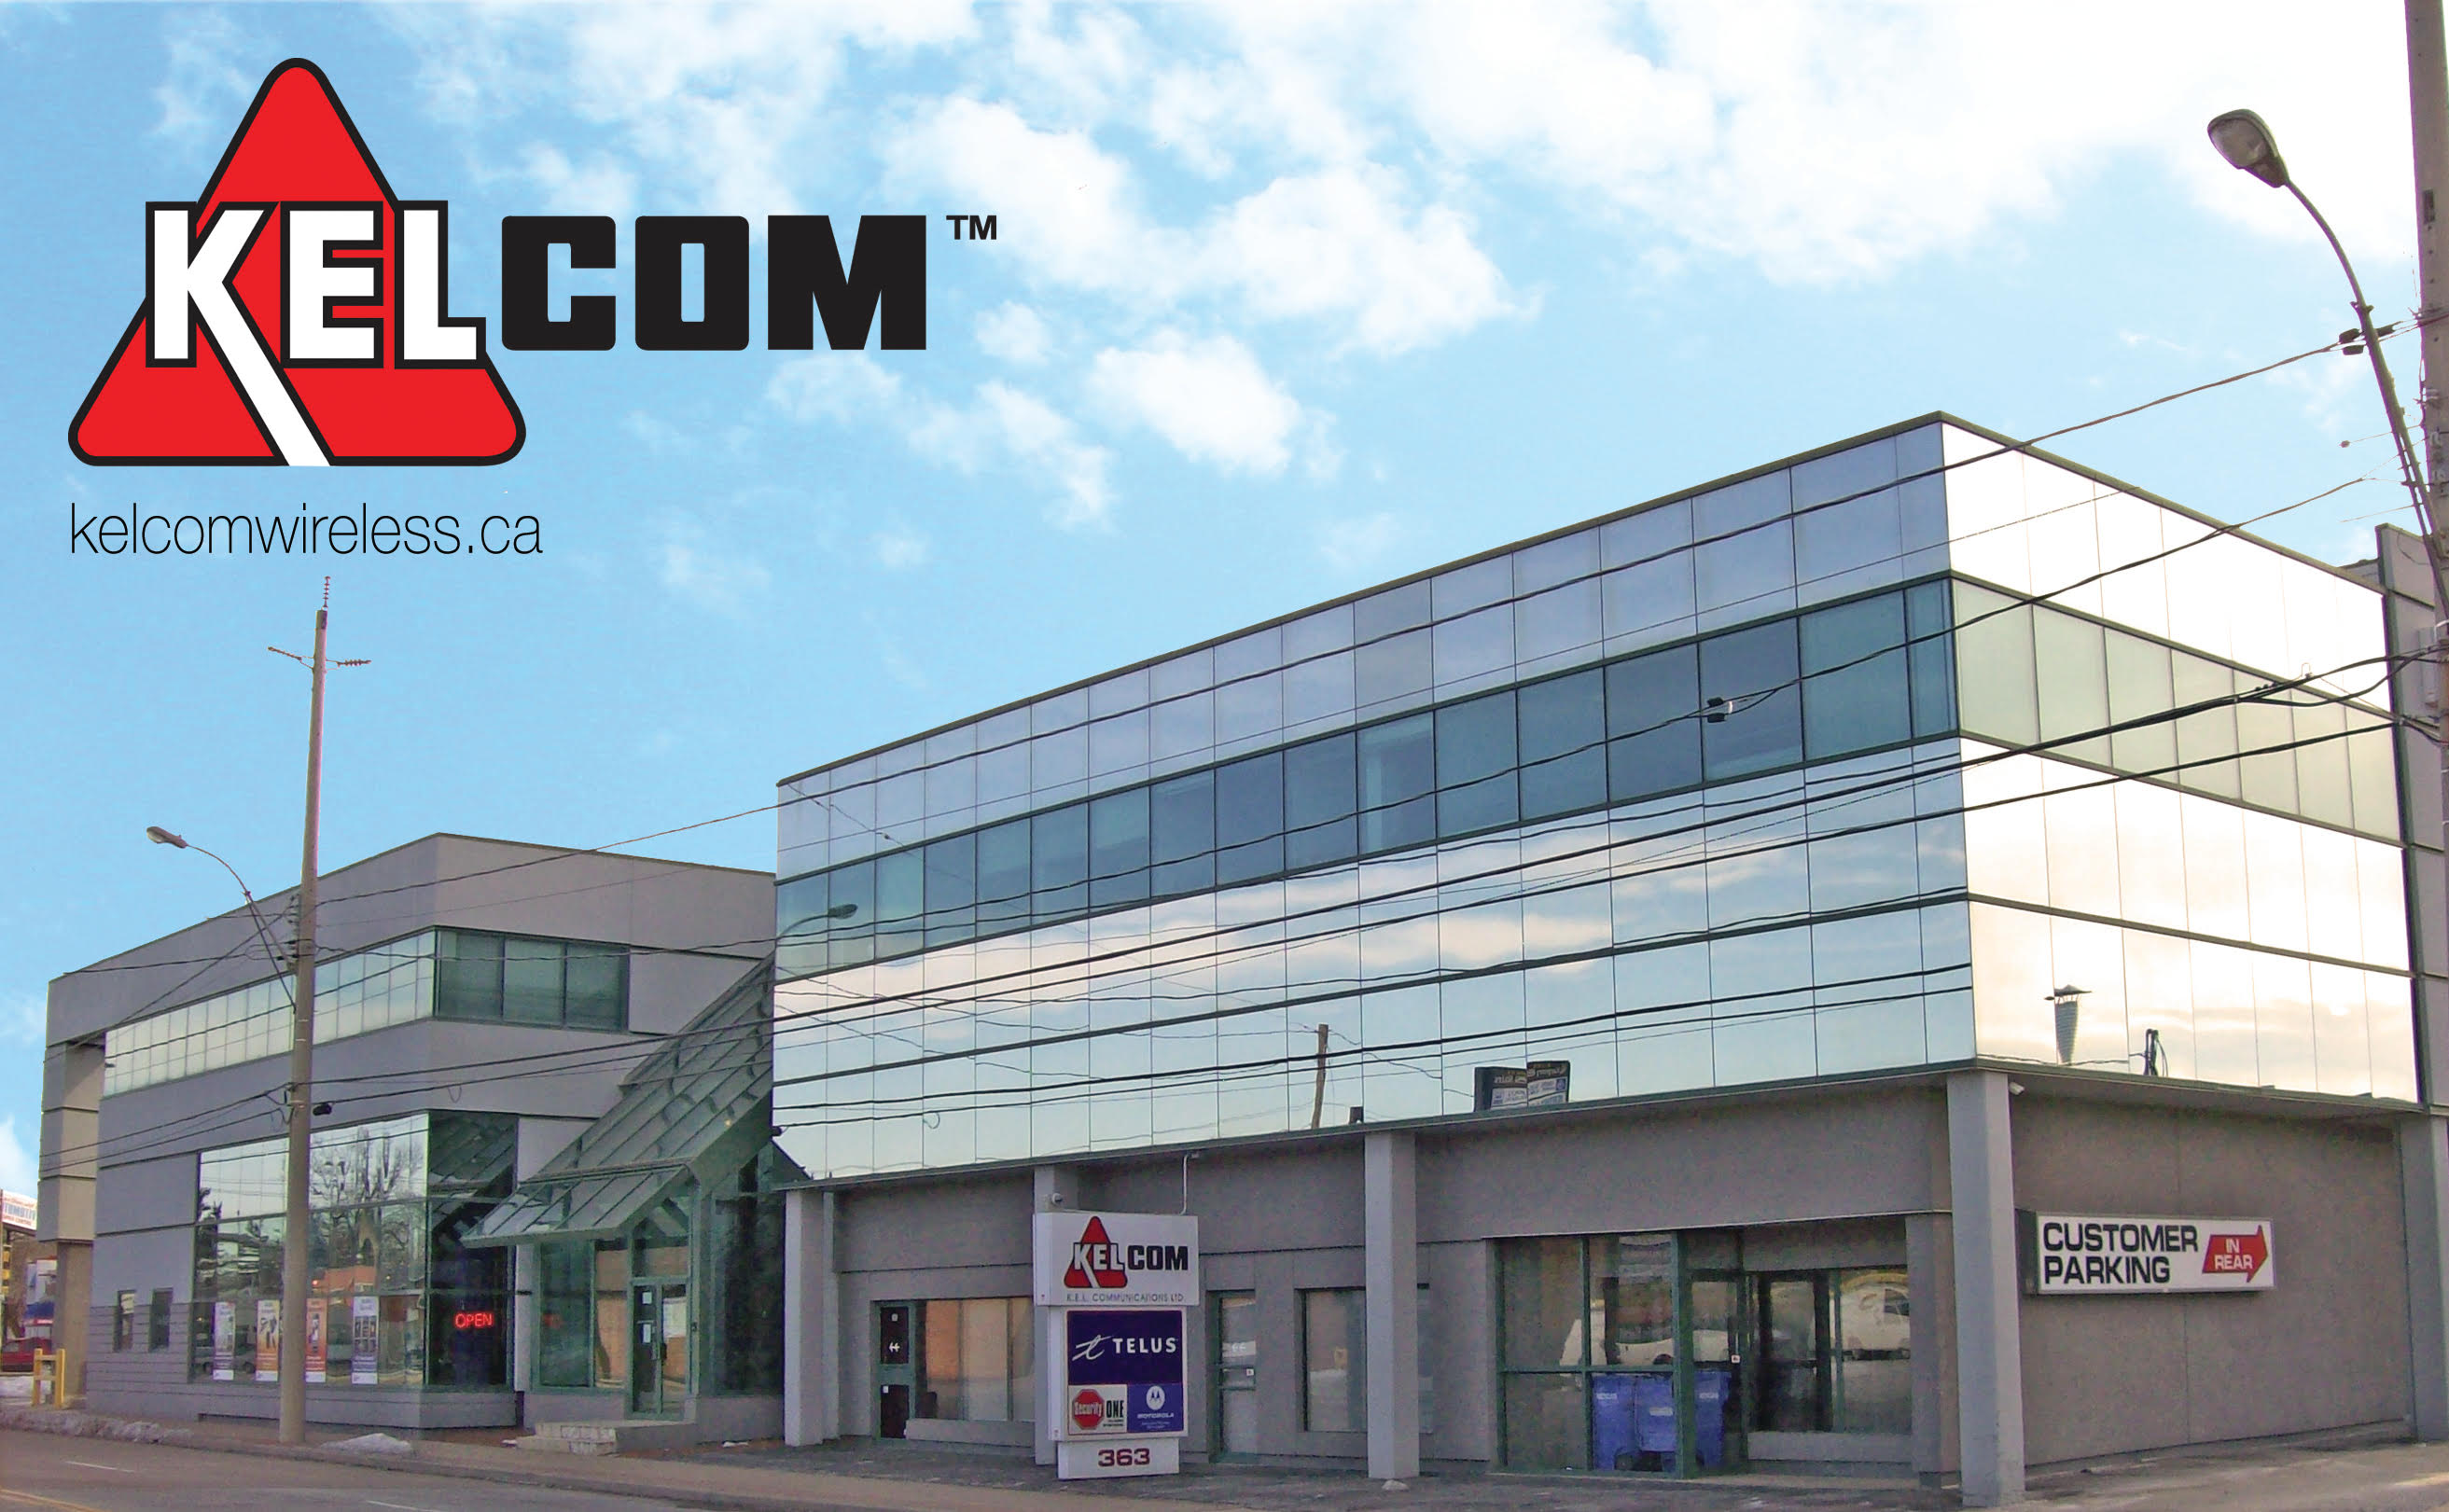 kelcom wireless store in windsor ontario canada, 363 eugenie street east, great telus mobility example